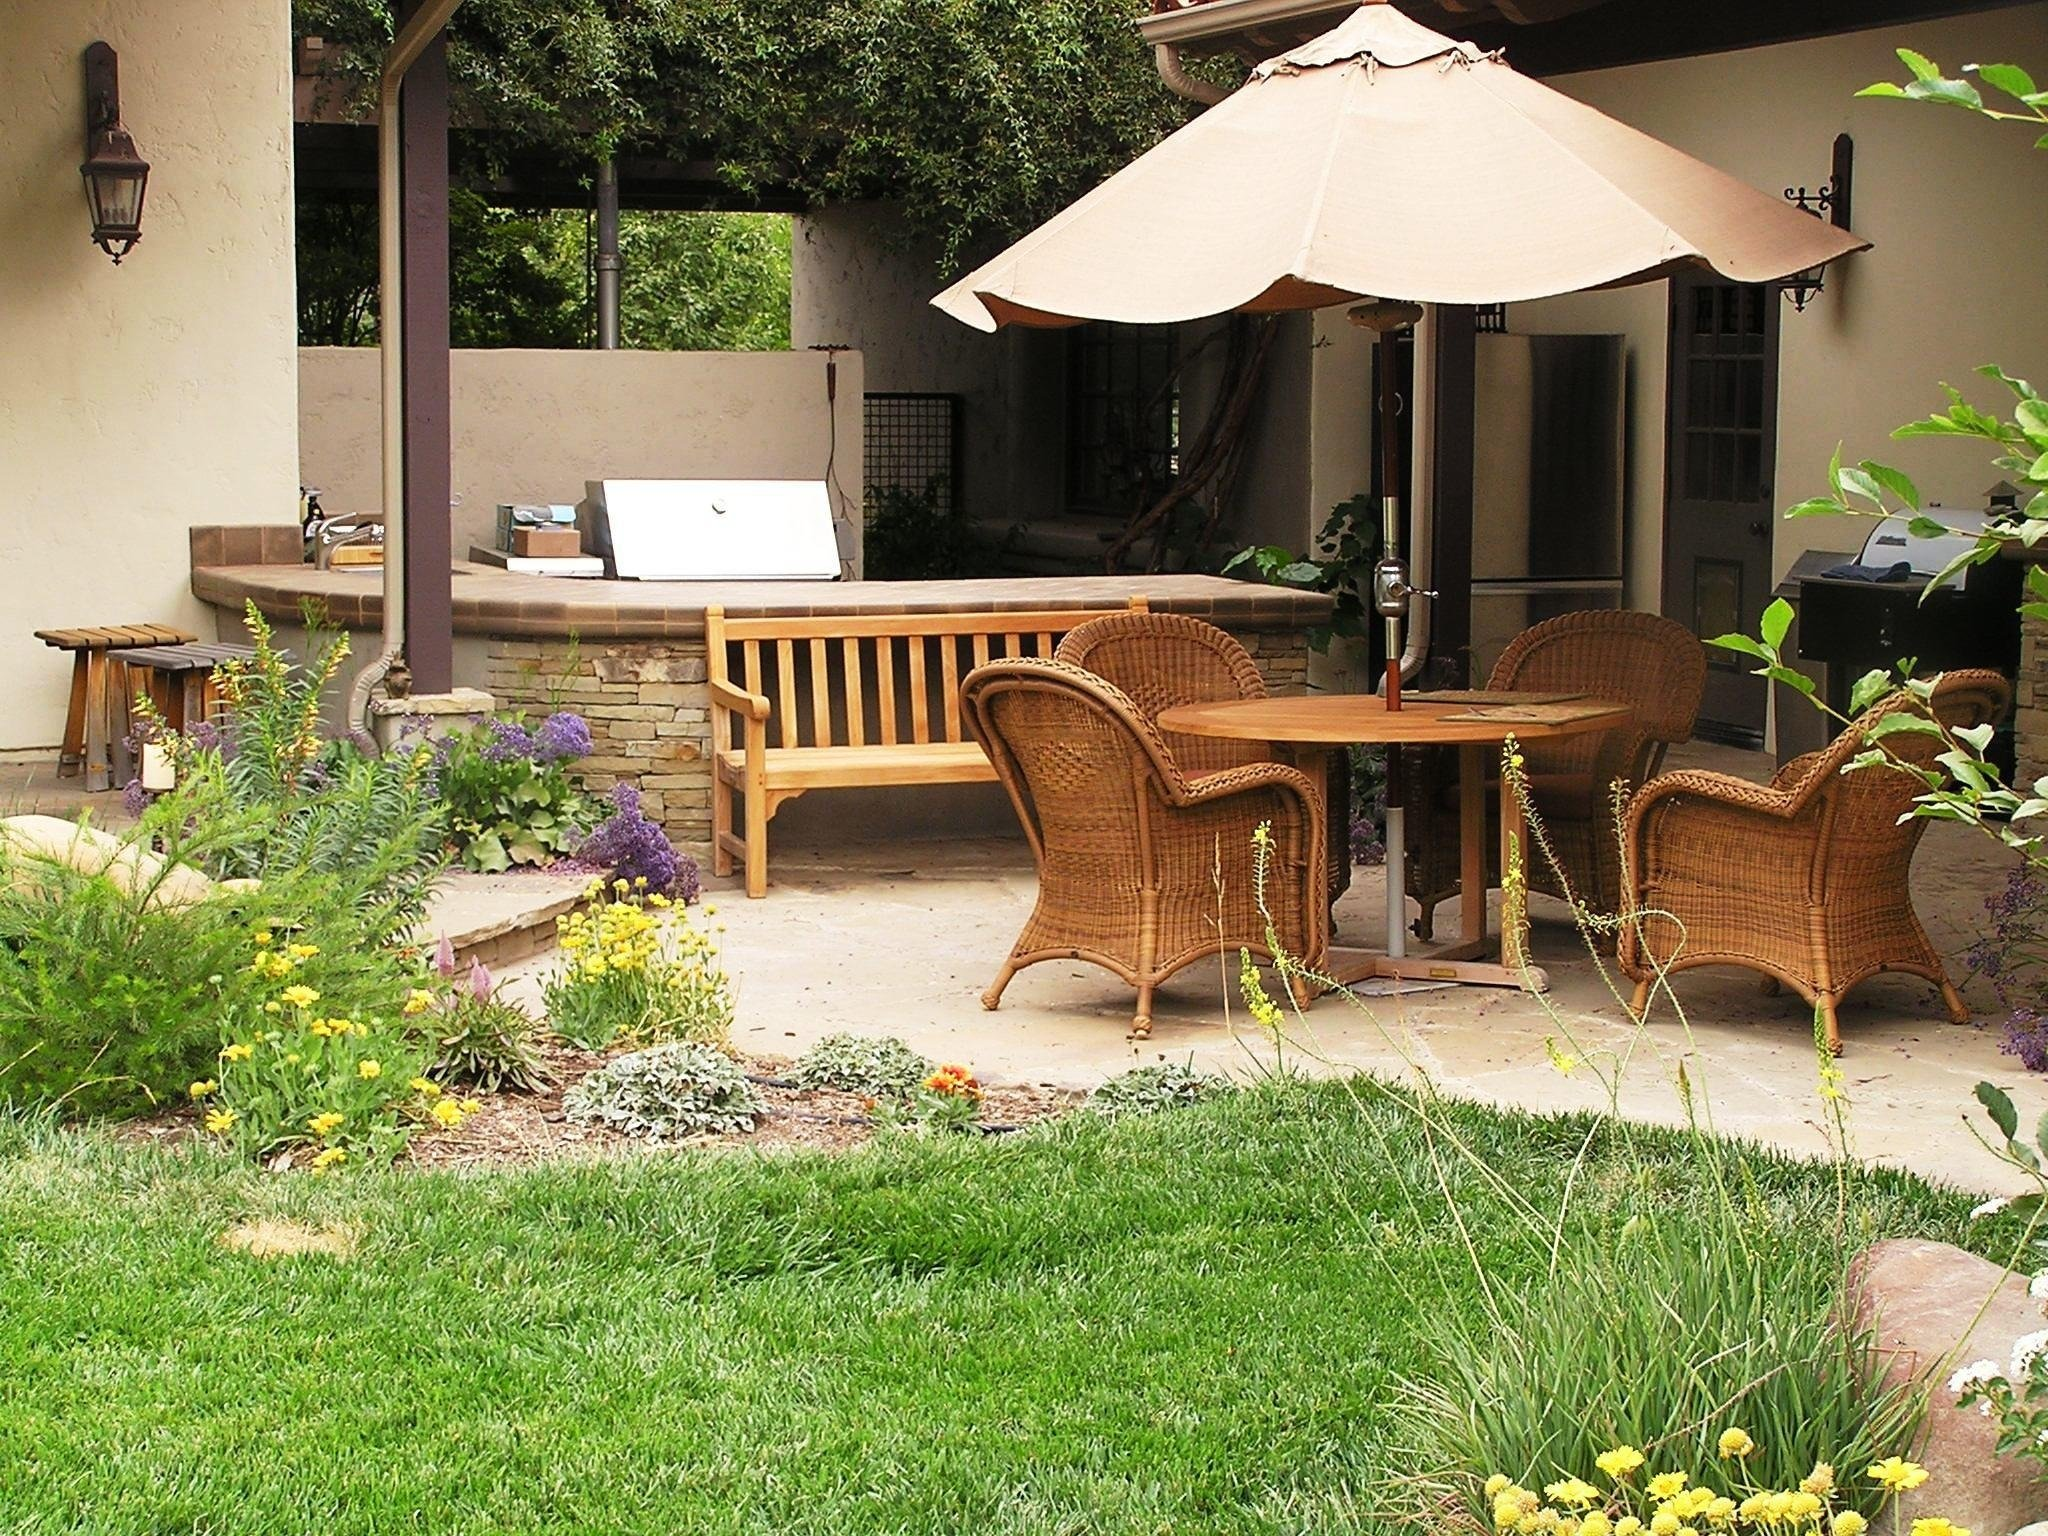 10 Perfect Outdoor Patio Ideas For Small Spaces outdoor patio ideas for small spaces riothorseroyale homes 2020